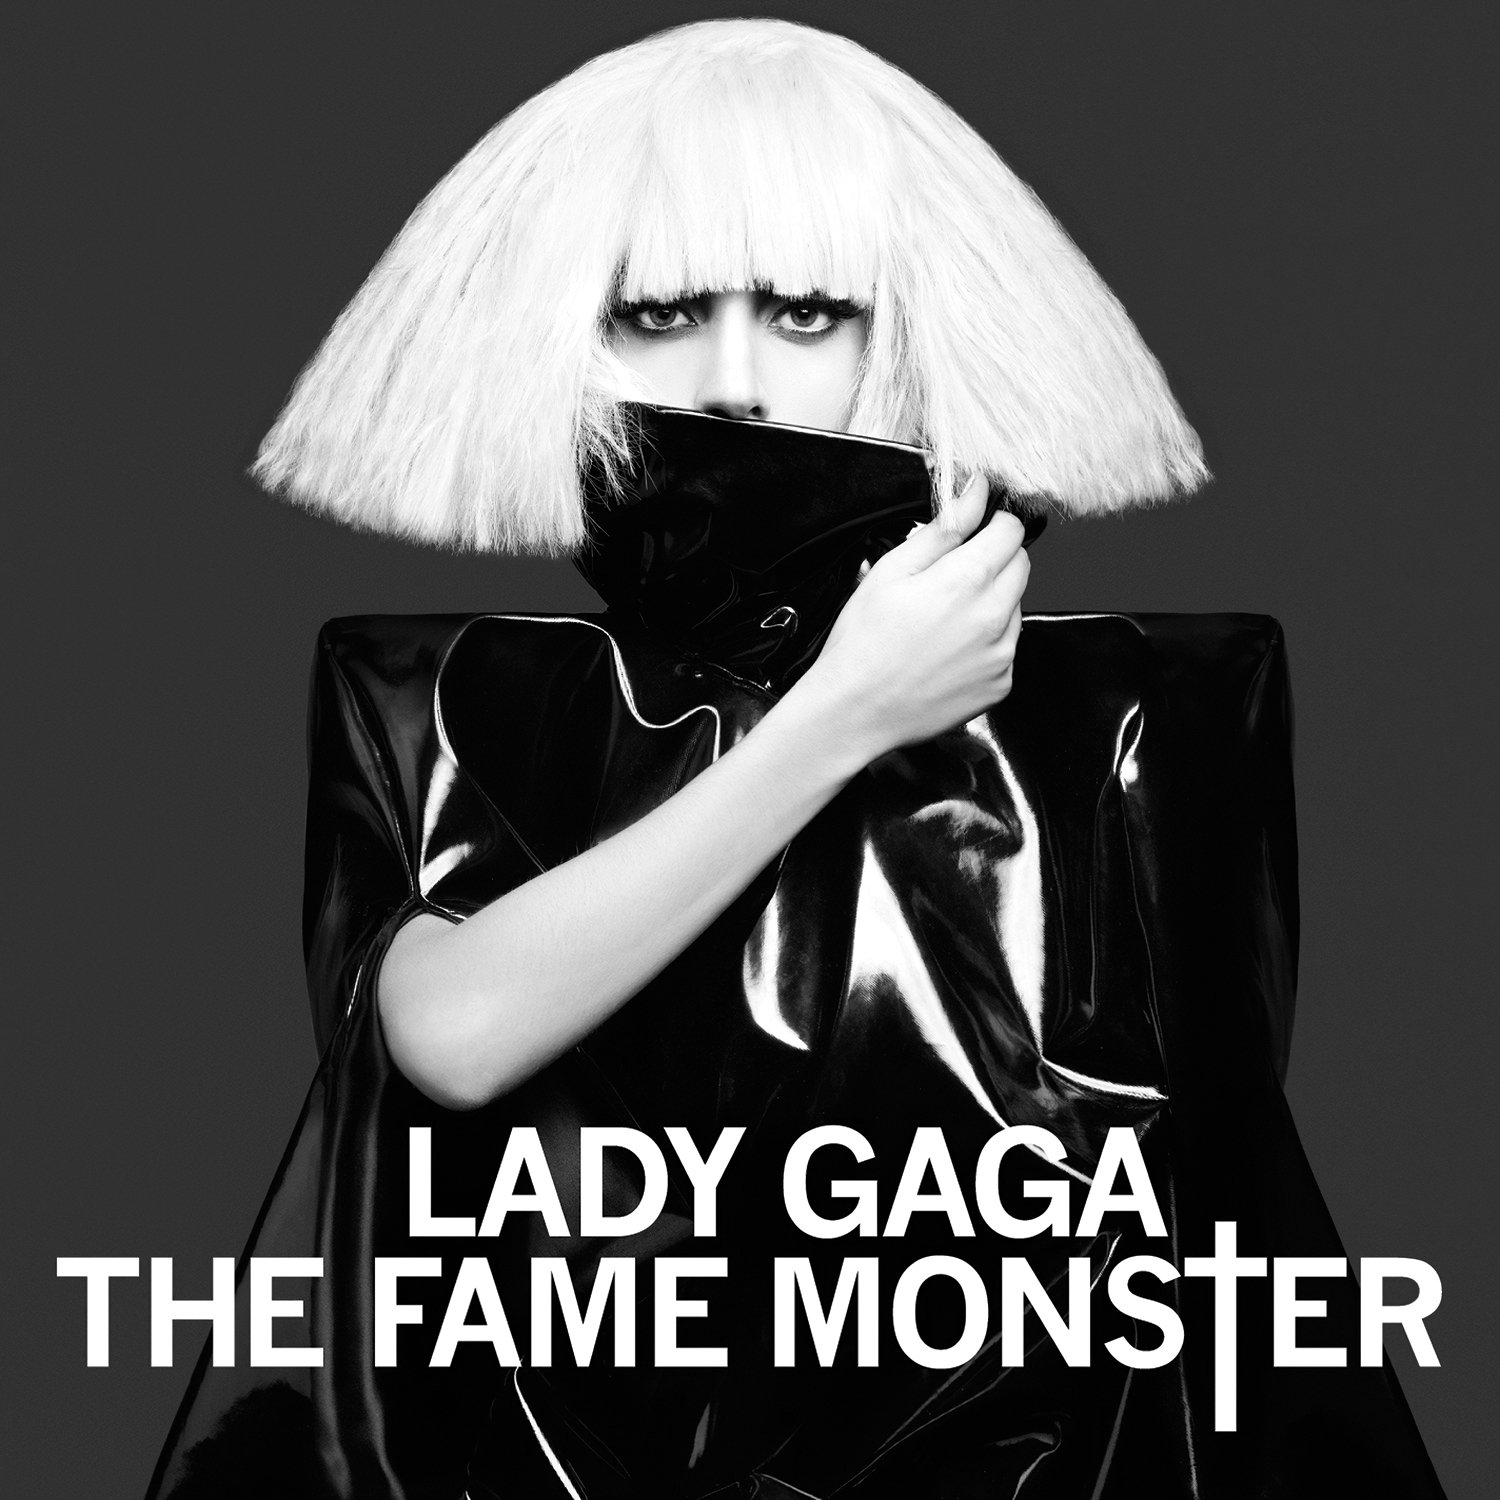 Lady Gaga, The Fame Monster